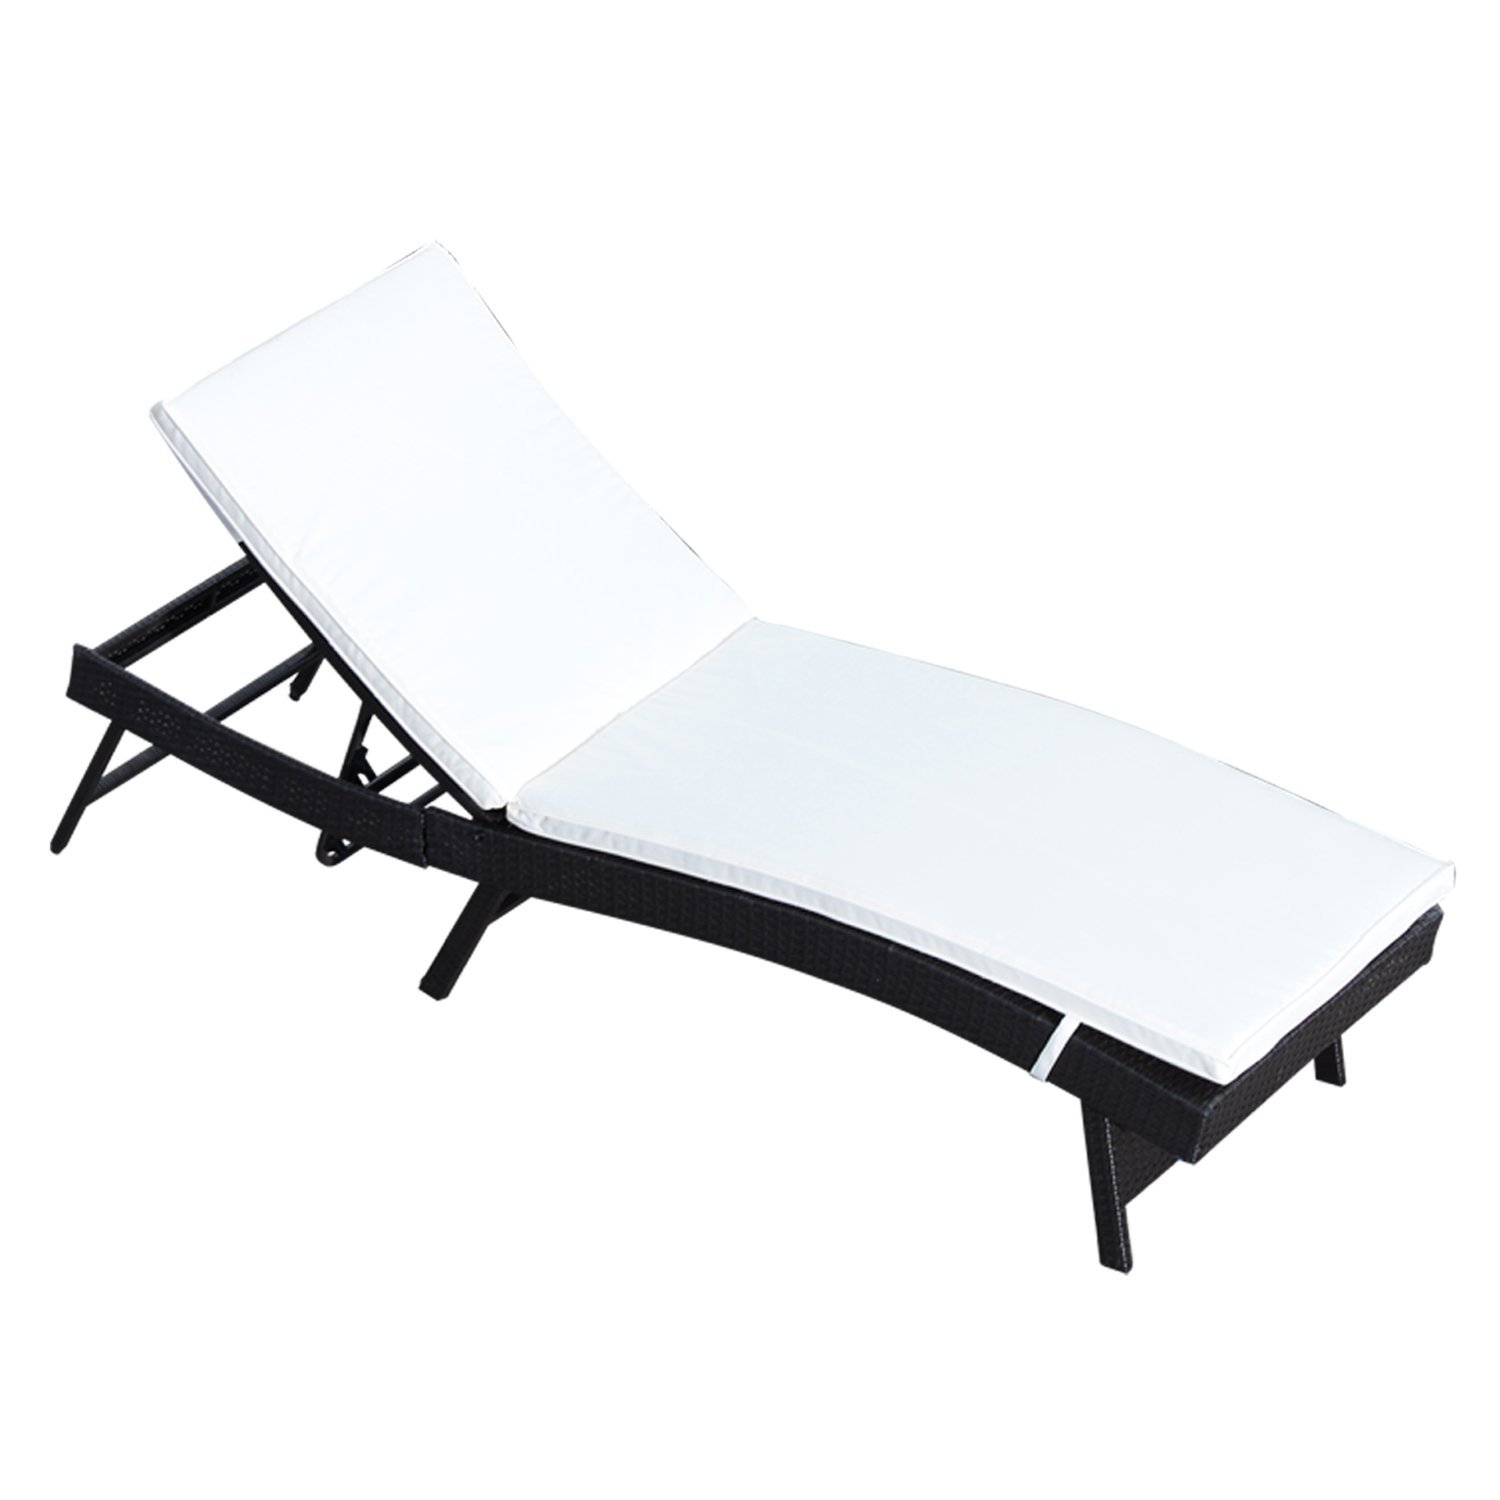 Outsunny Bed Beach Chair Outdoor Furniture Sun Adjustable With Cushion Rattan Garden 200x71x89 Cm Dark Coffee